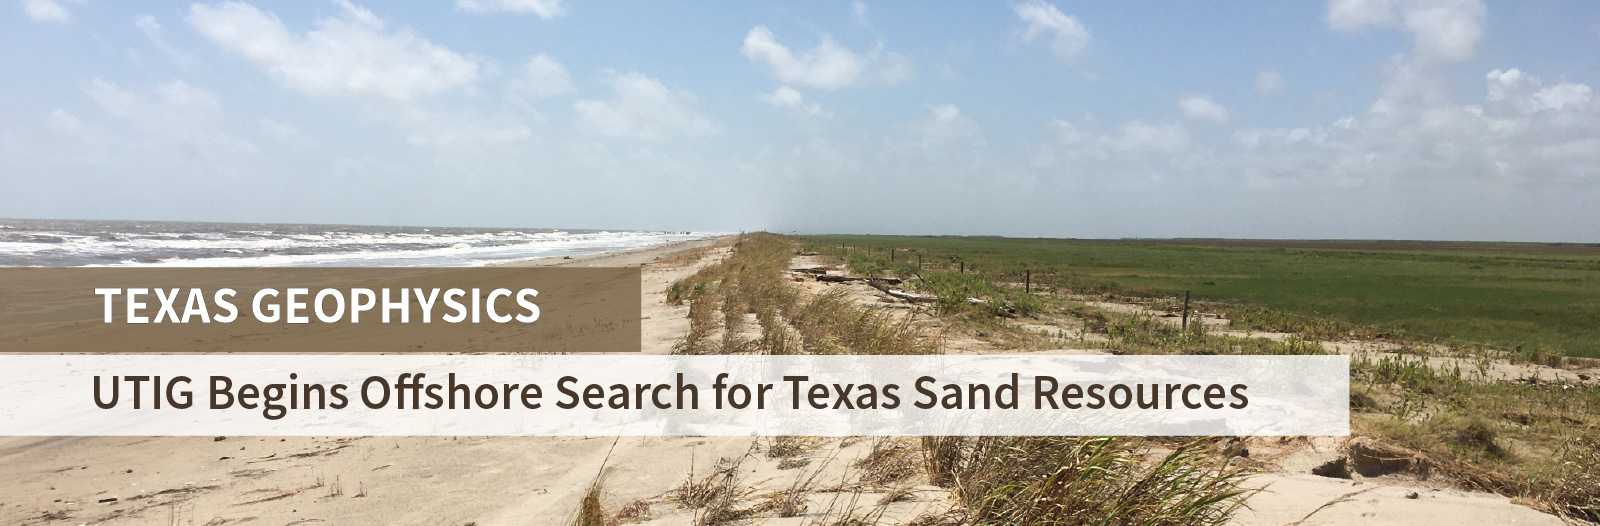 UT Begins Offshore Search for Sand Resources to Protect Texas from Coastal Erosion – Banner